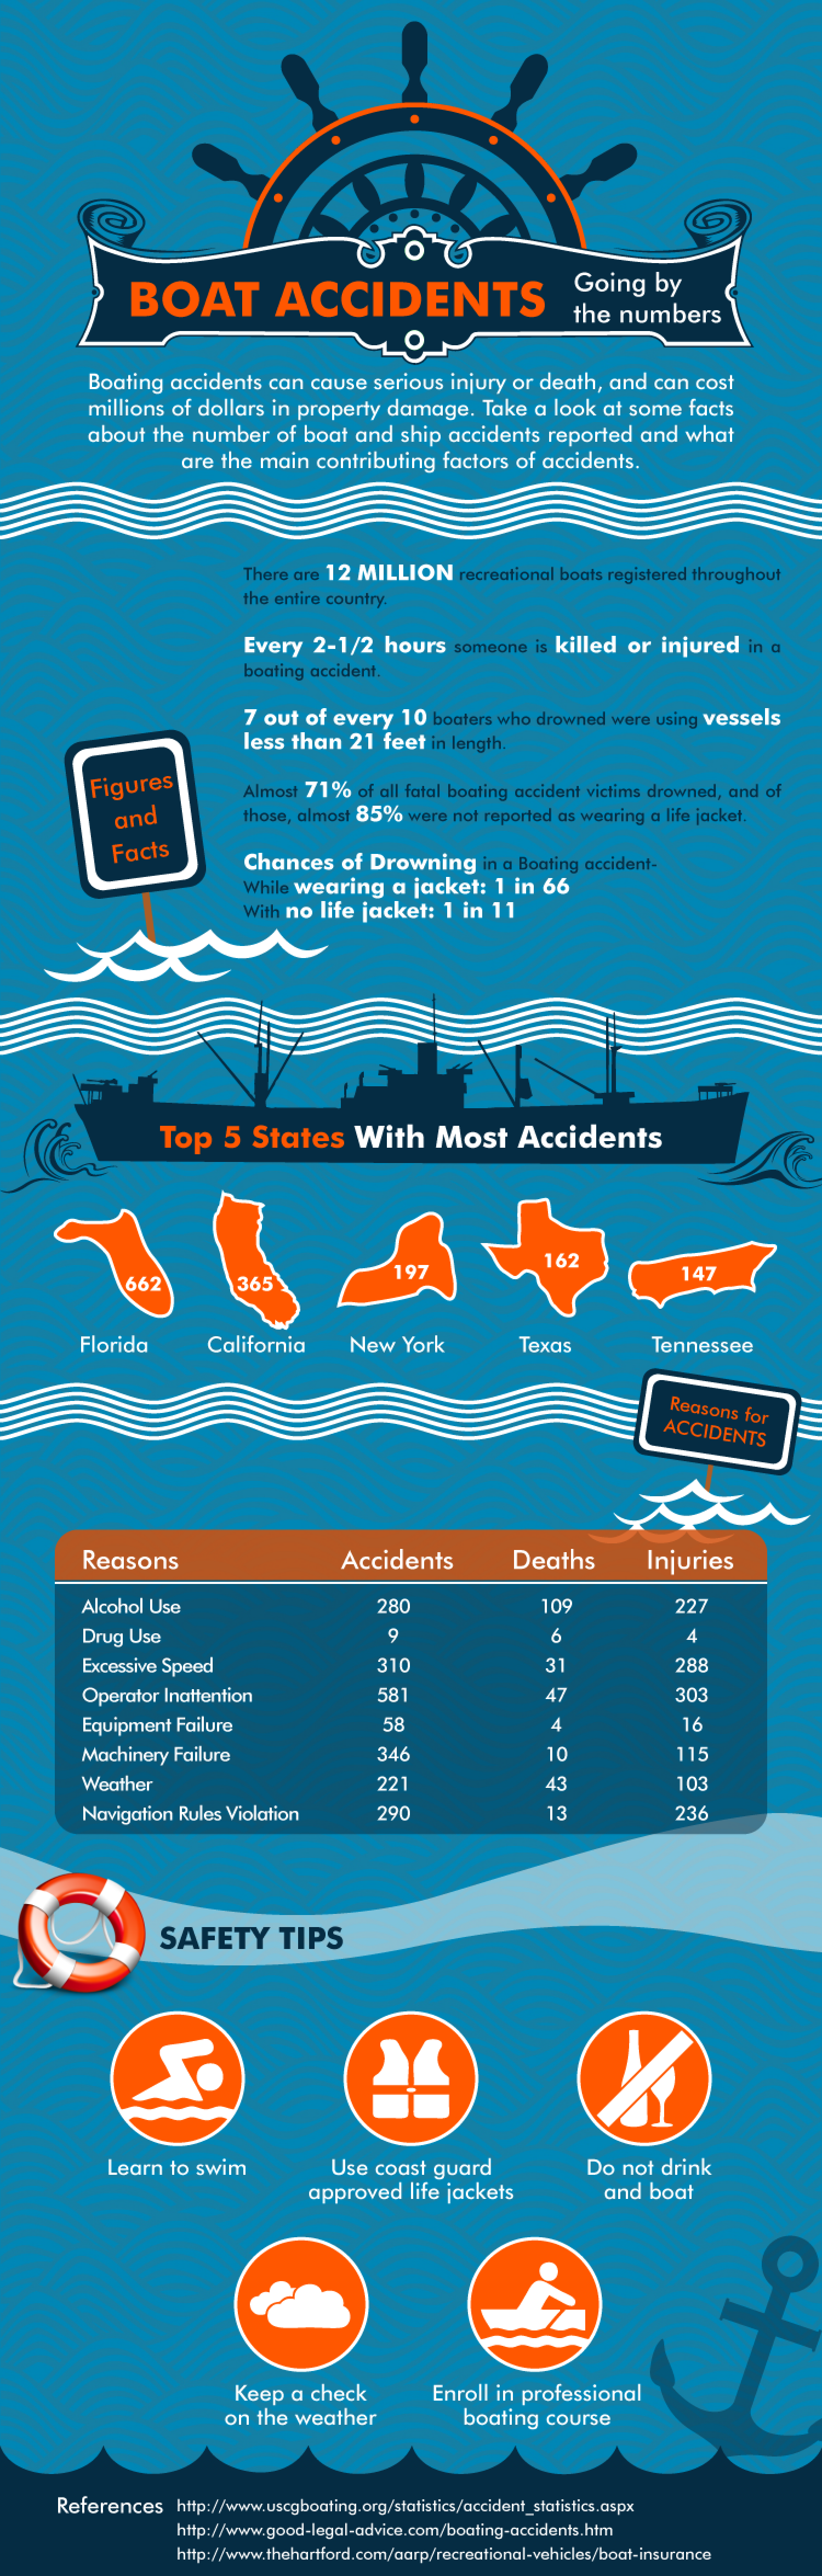 Boat Accidents: Going By The Numbers Infographic